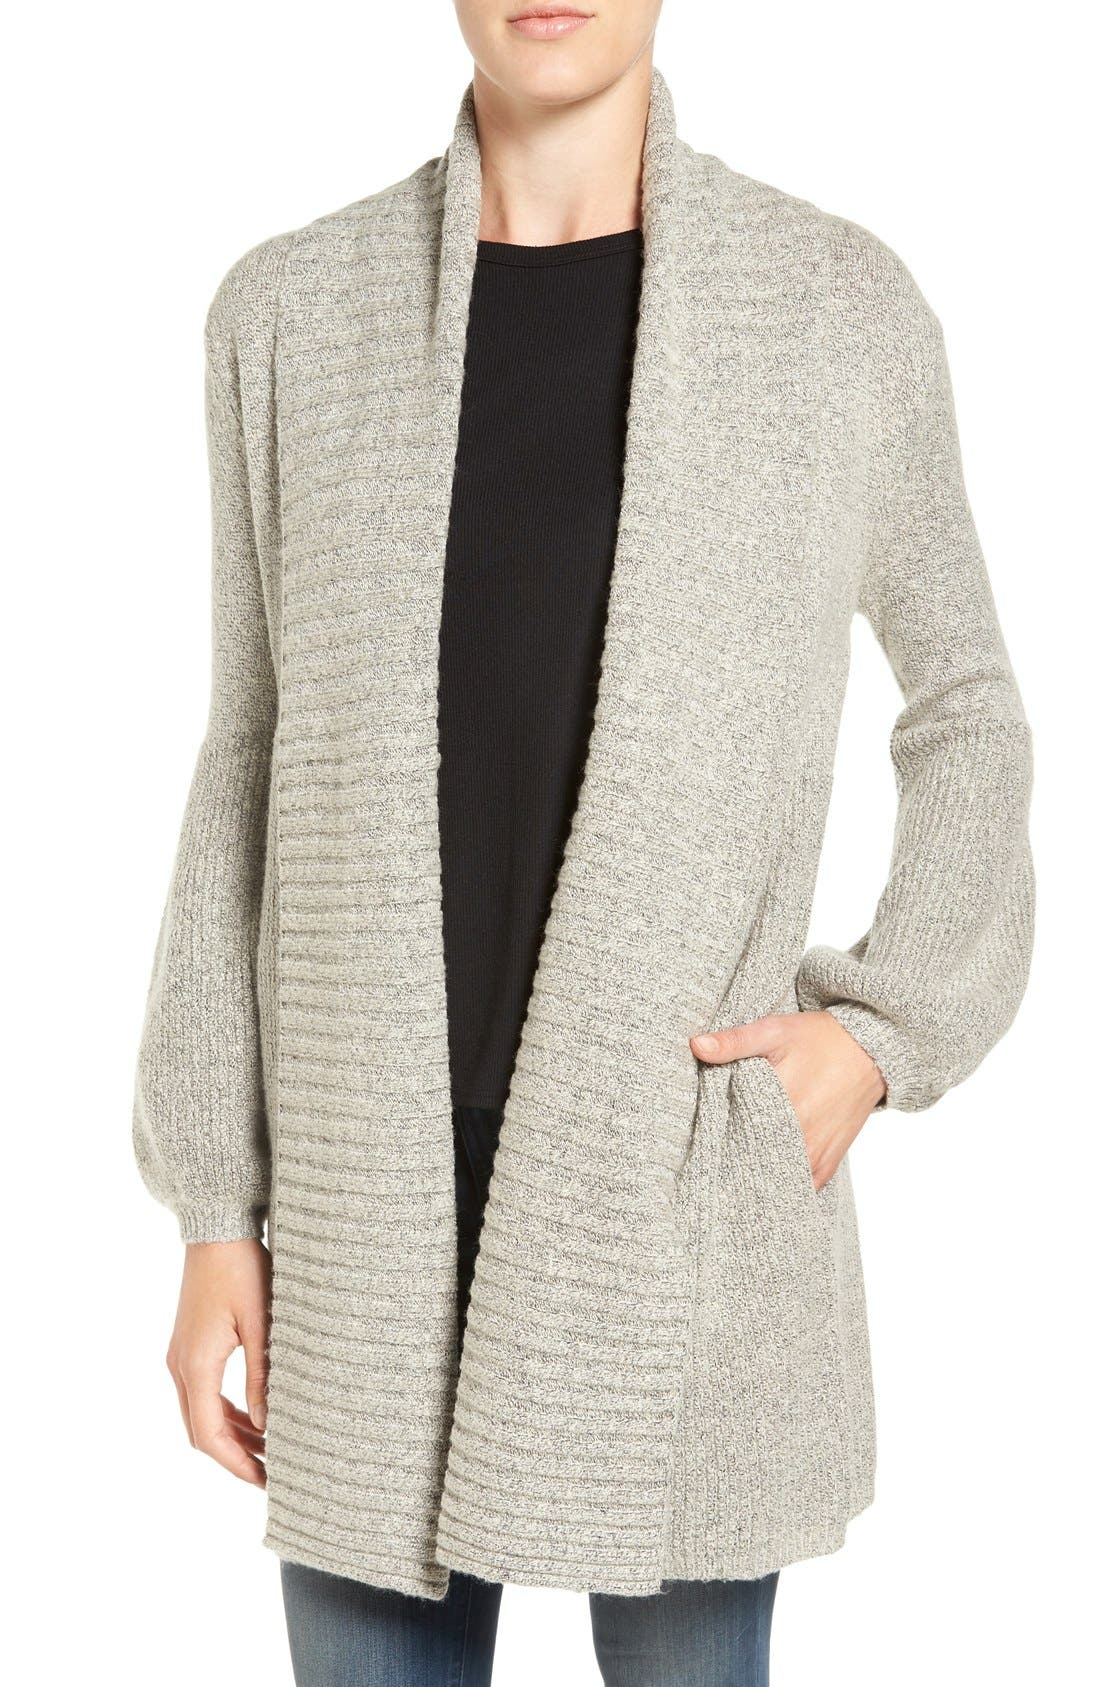 Ribbed Cardigan,                         Main,                         color, Grey Chime Heather